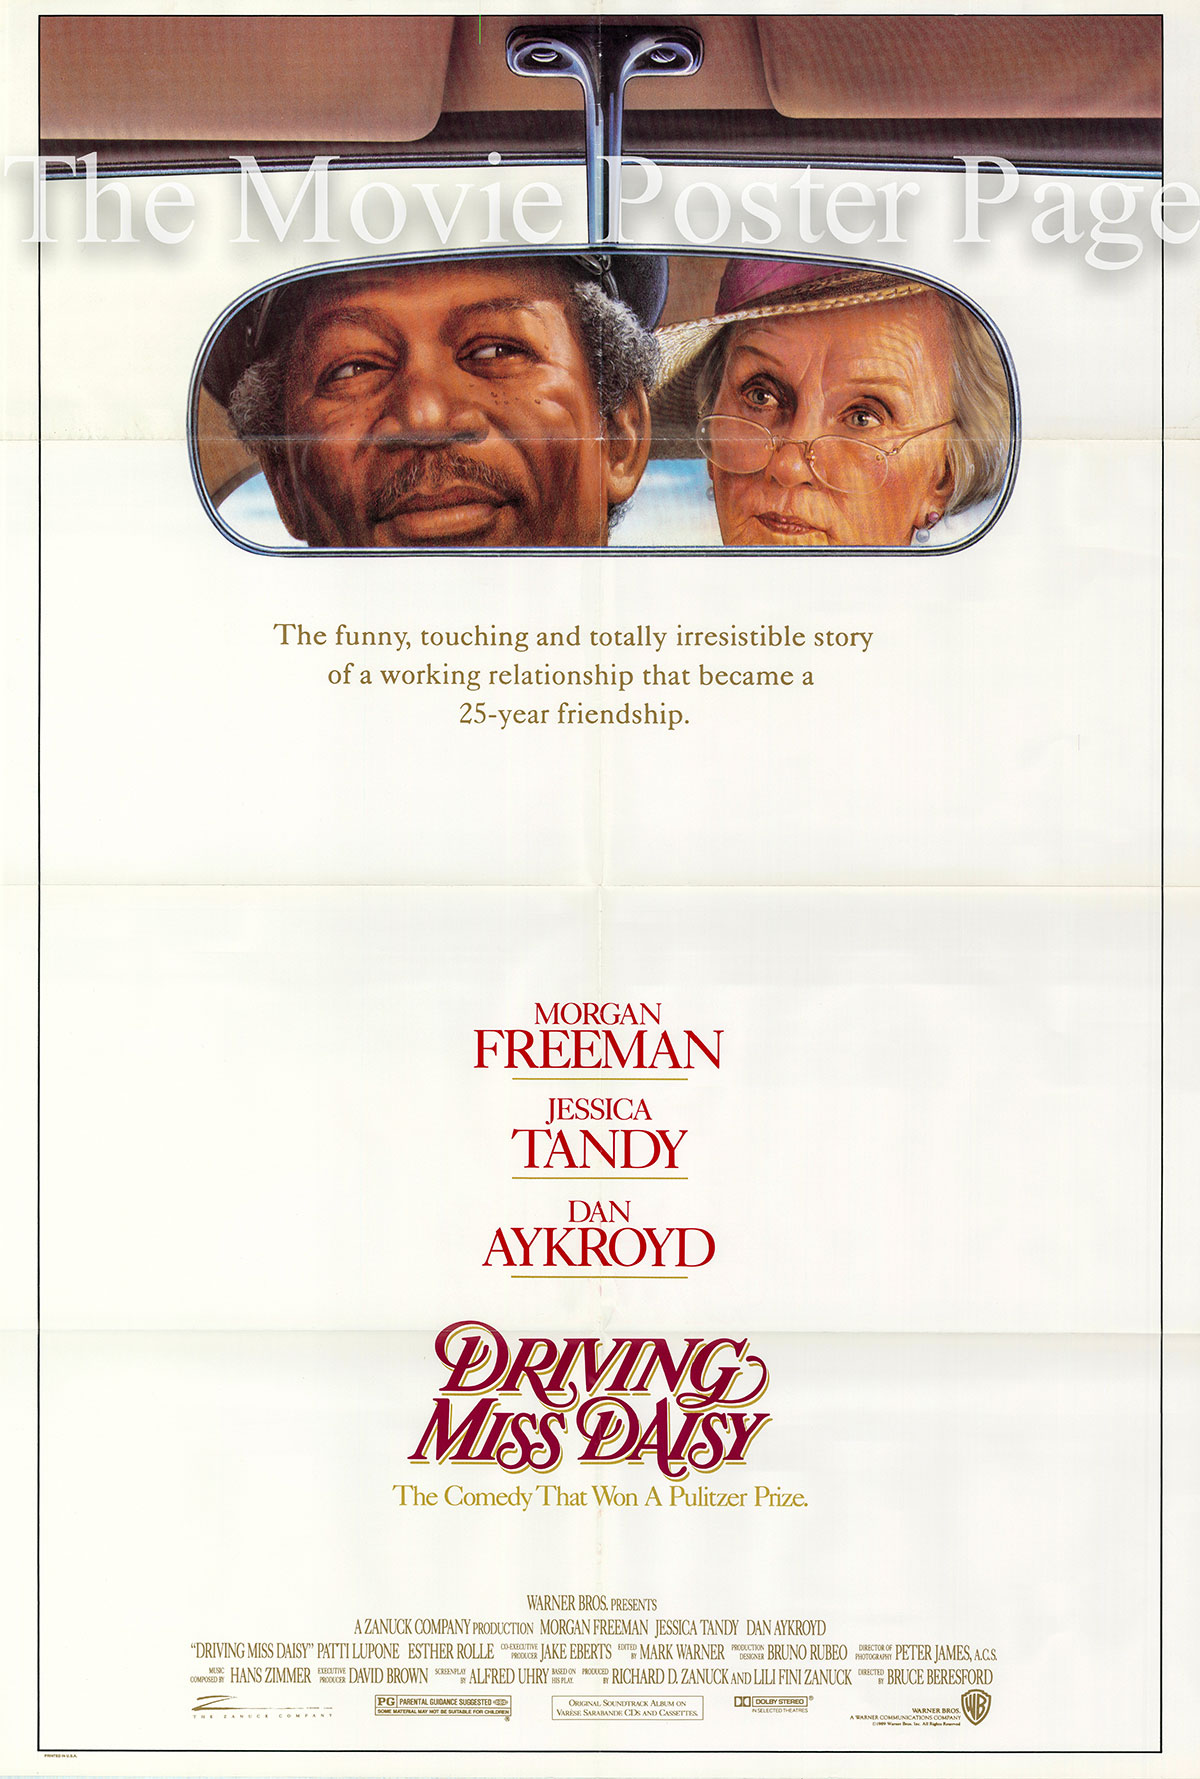 Pictured is a US promotional one-sheet poster for the 1989 Bruce Beresford film Driving Miss Daisy starring Morgan Freeman and Jessica Tandy.